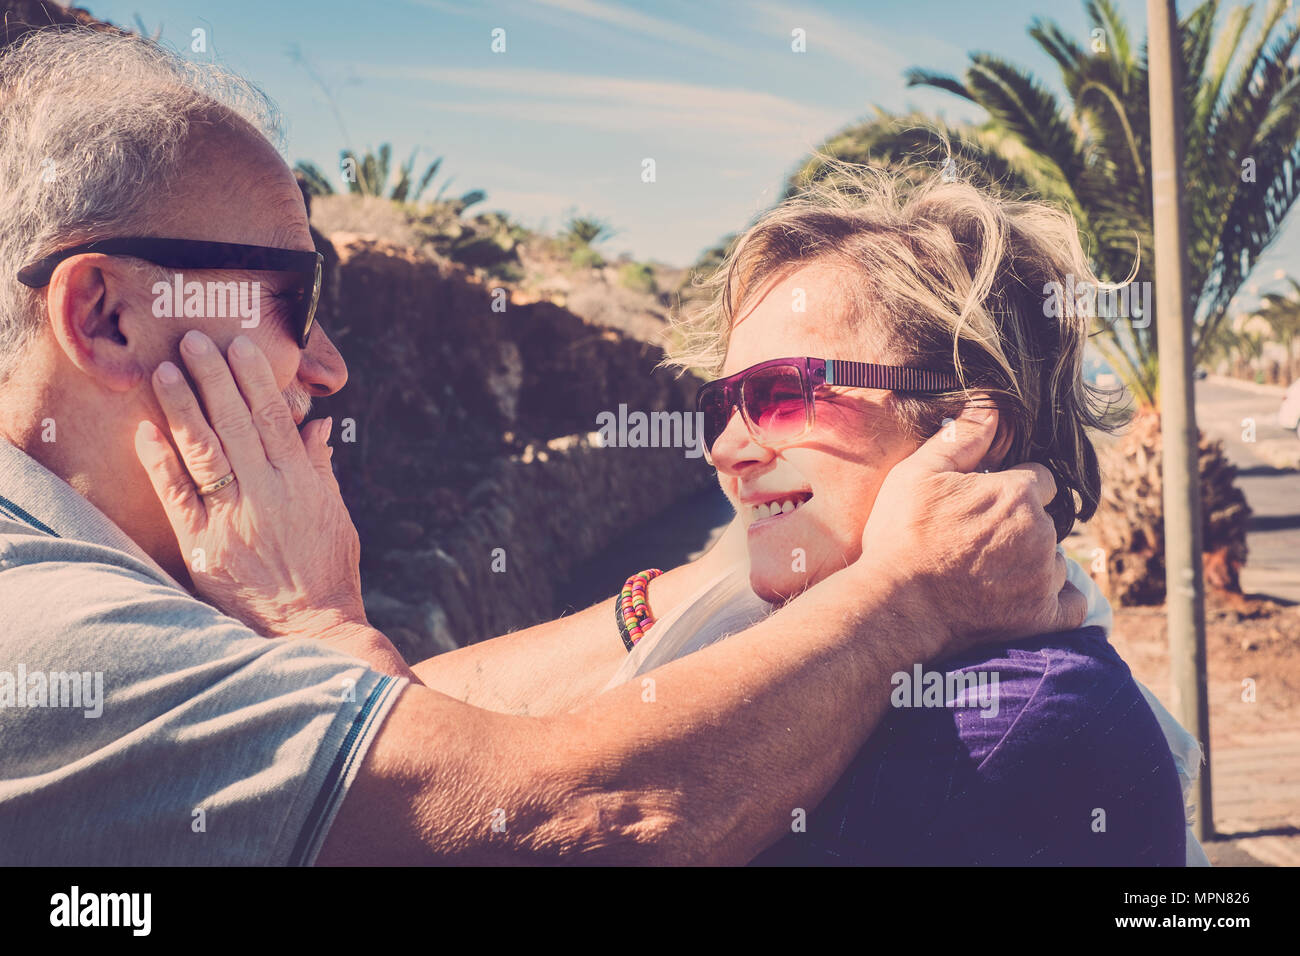 Elderly couple with white hair pampers and hugs each other in the open air under the sun in Tenerife - Stock Image